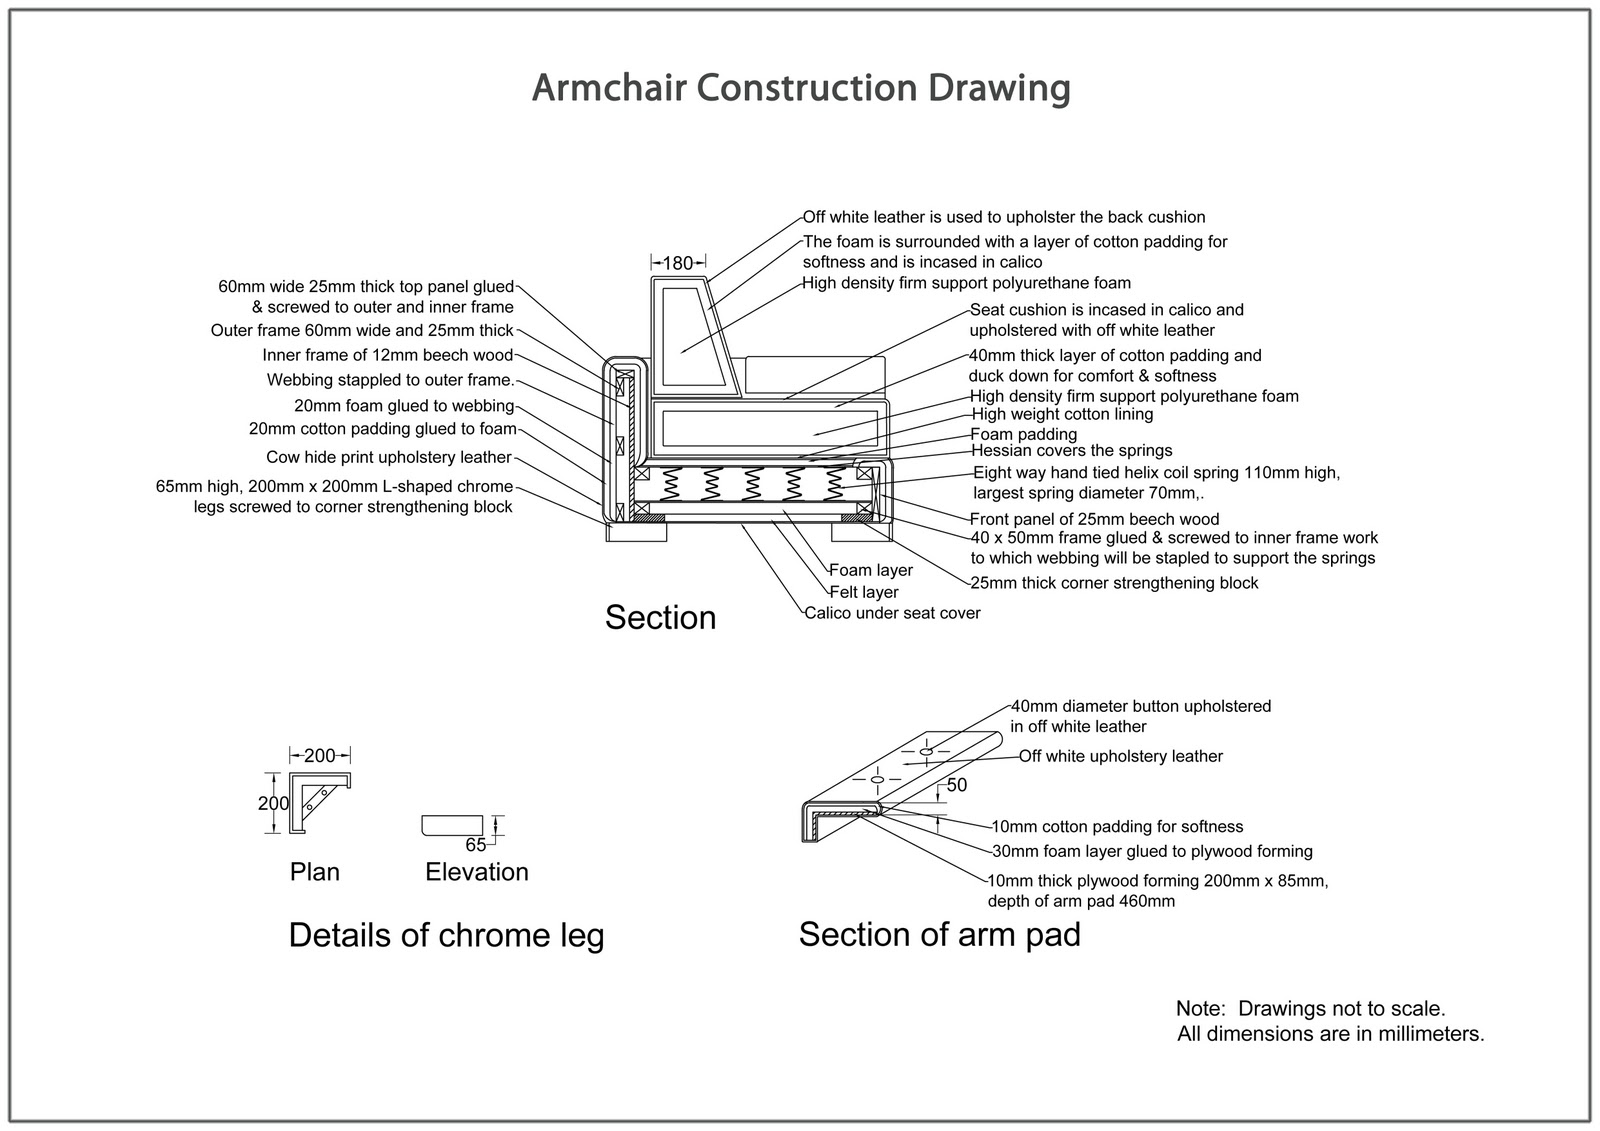 Sofa Drawing Details Wiado. Sophisticated Sofa In Sections